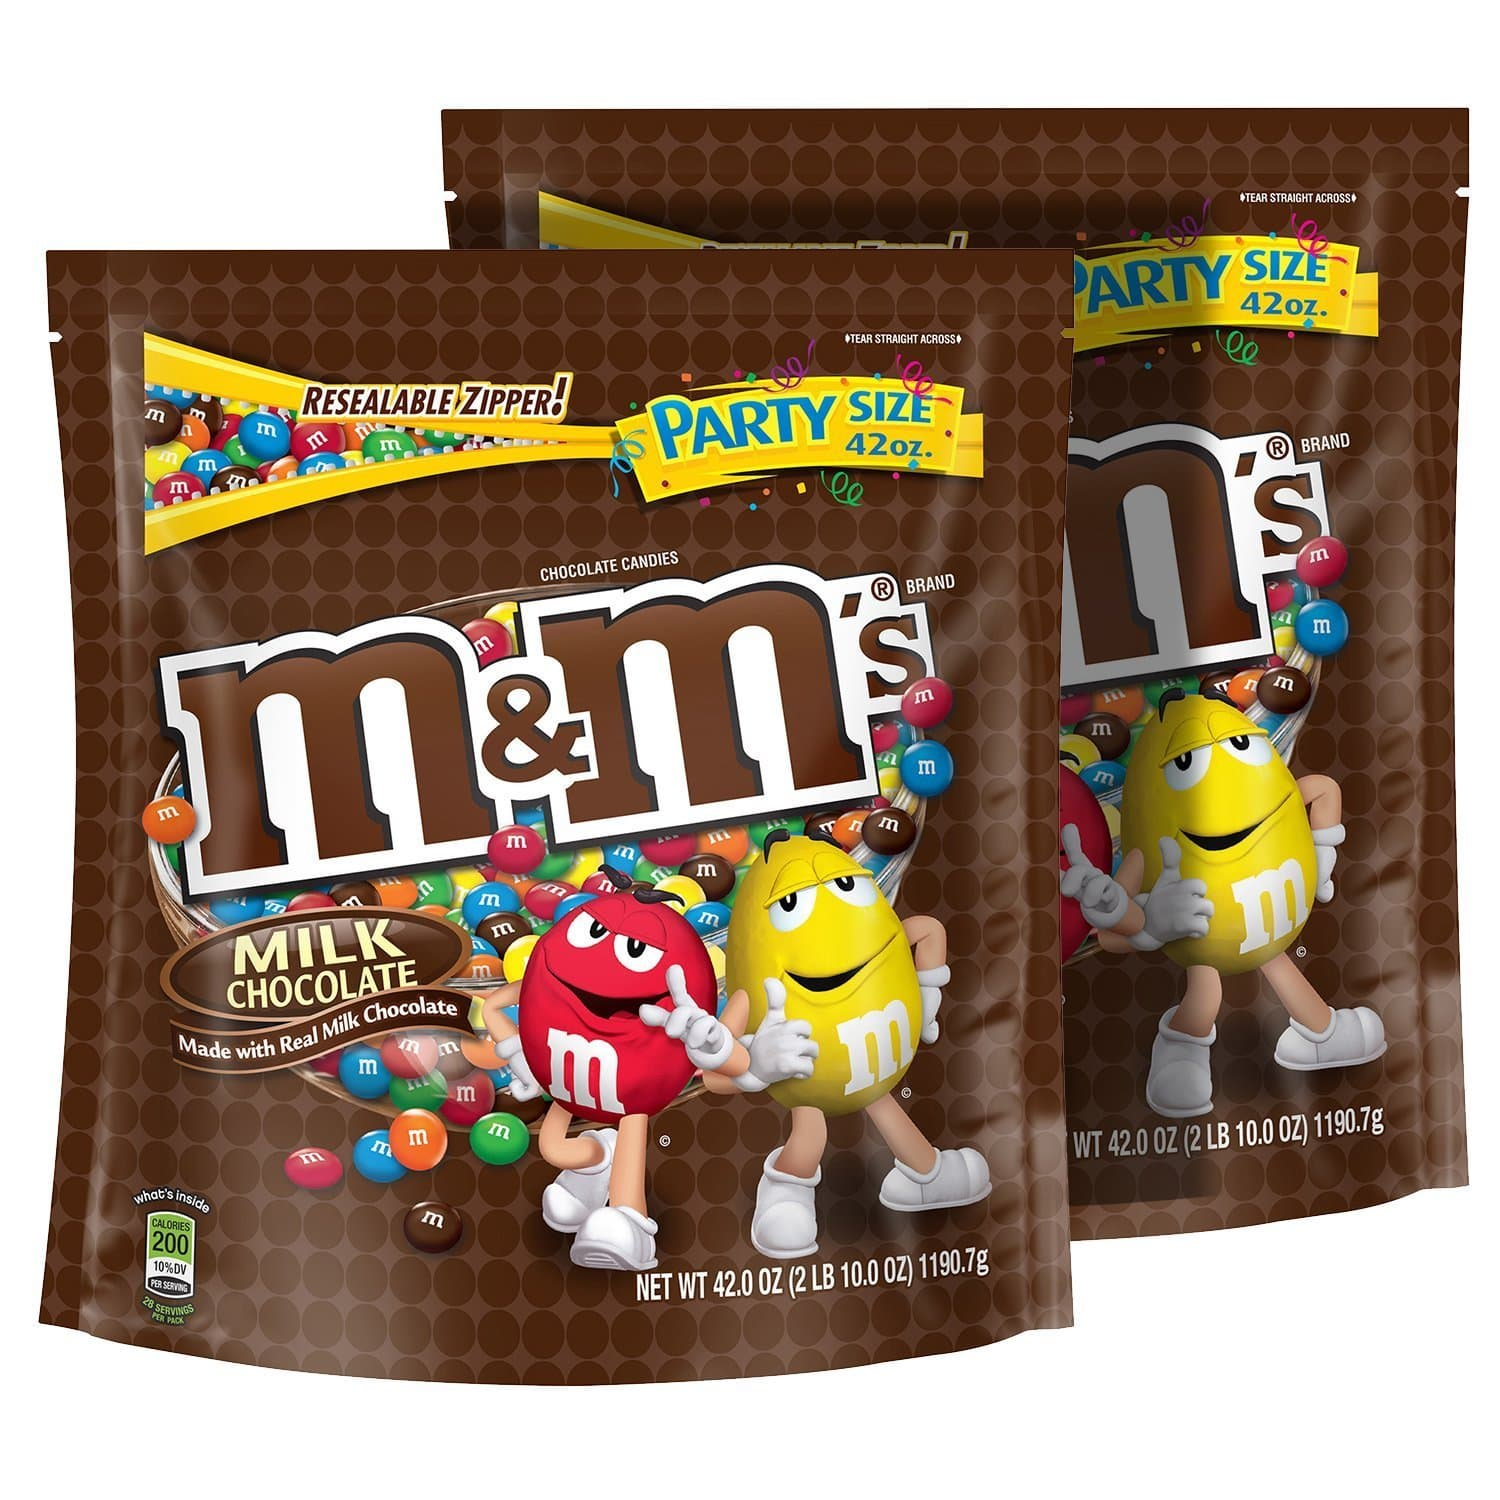 2-Pack 42oz. M&M's Milk Chocolate Candy Party Size Bag  $12.75